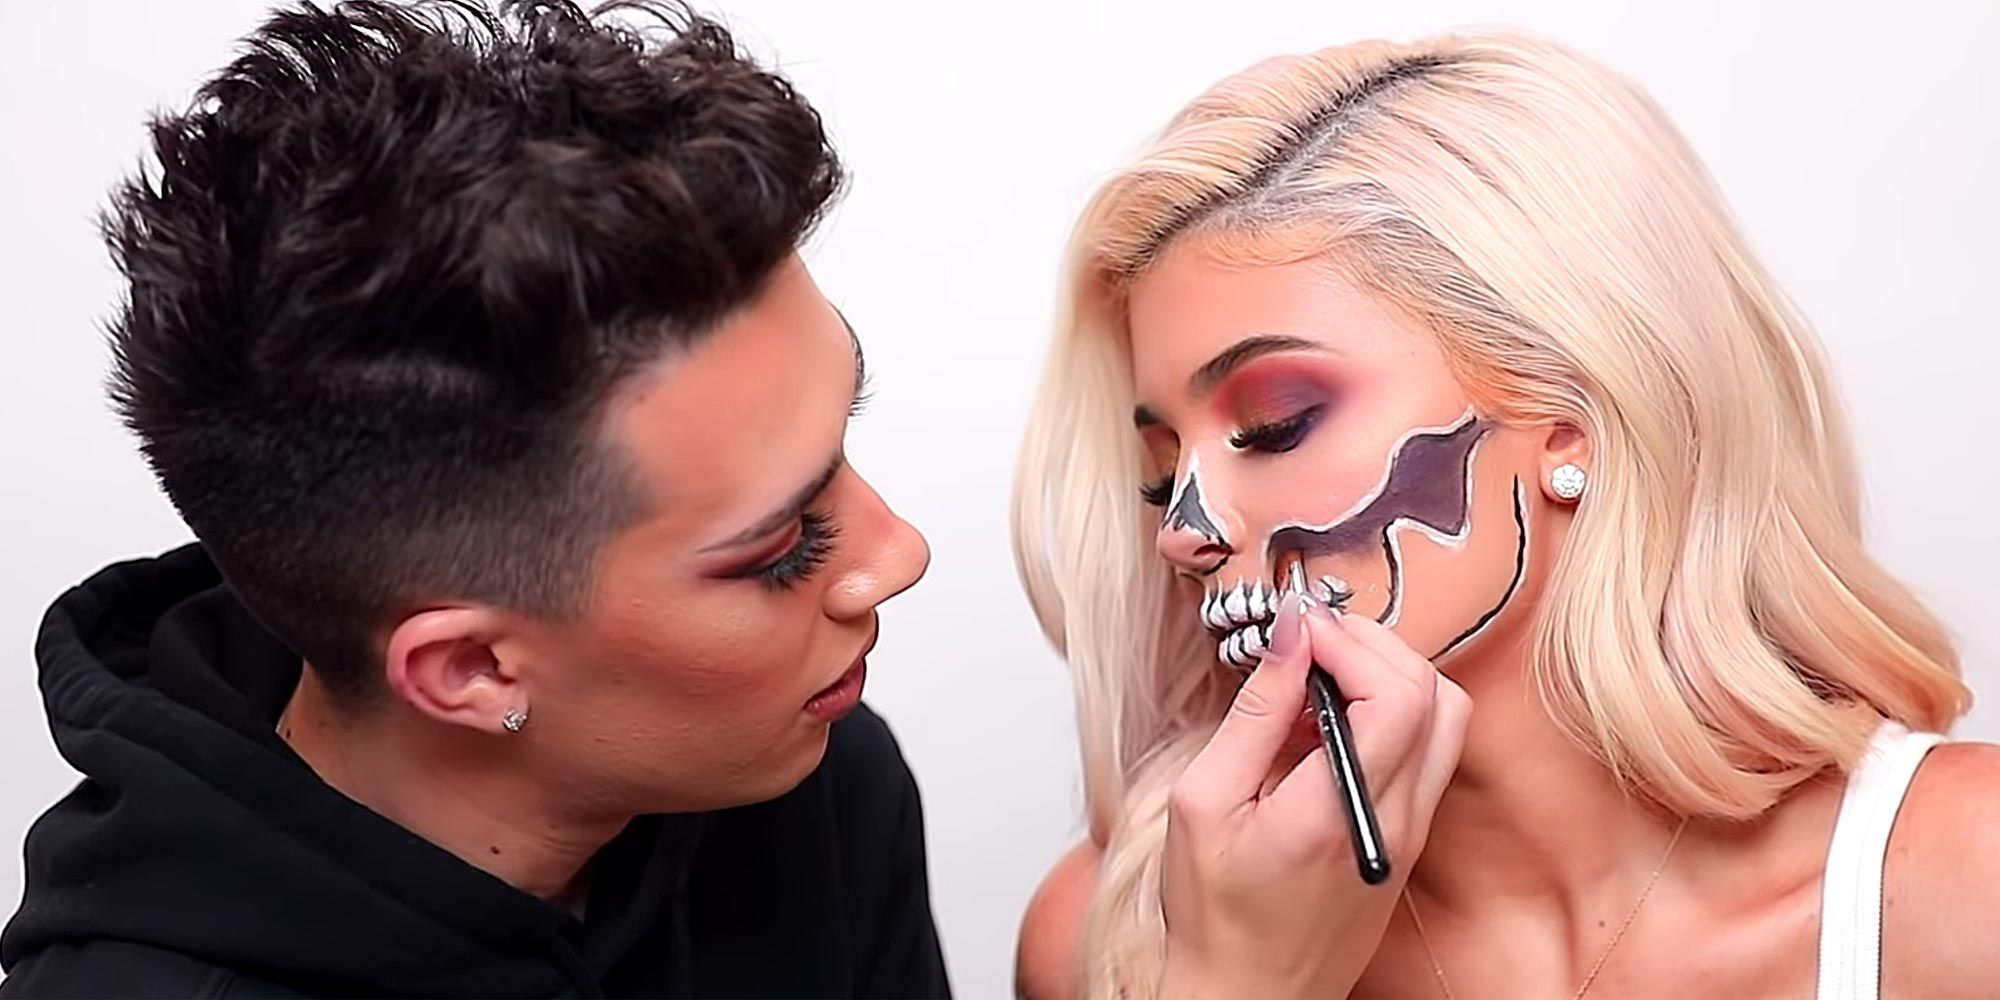 Has a skull ever looked better?